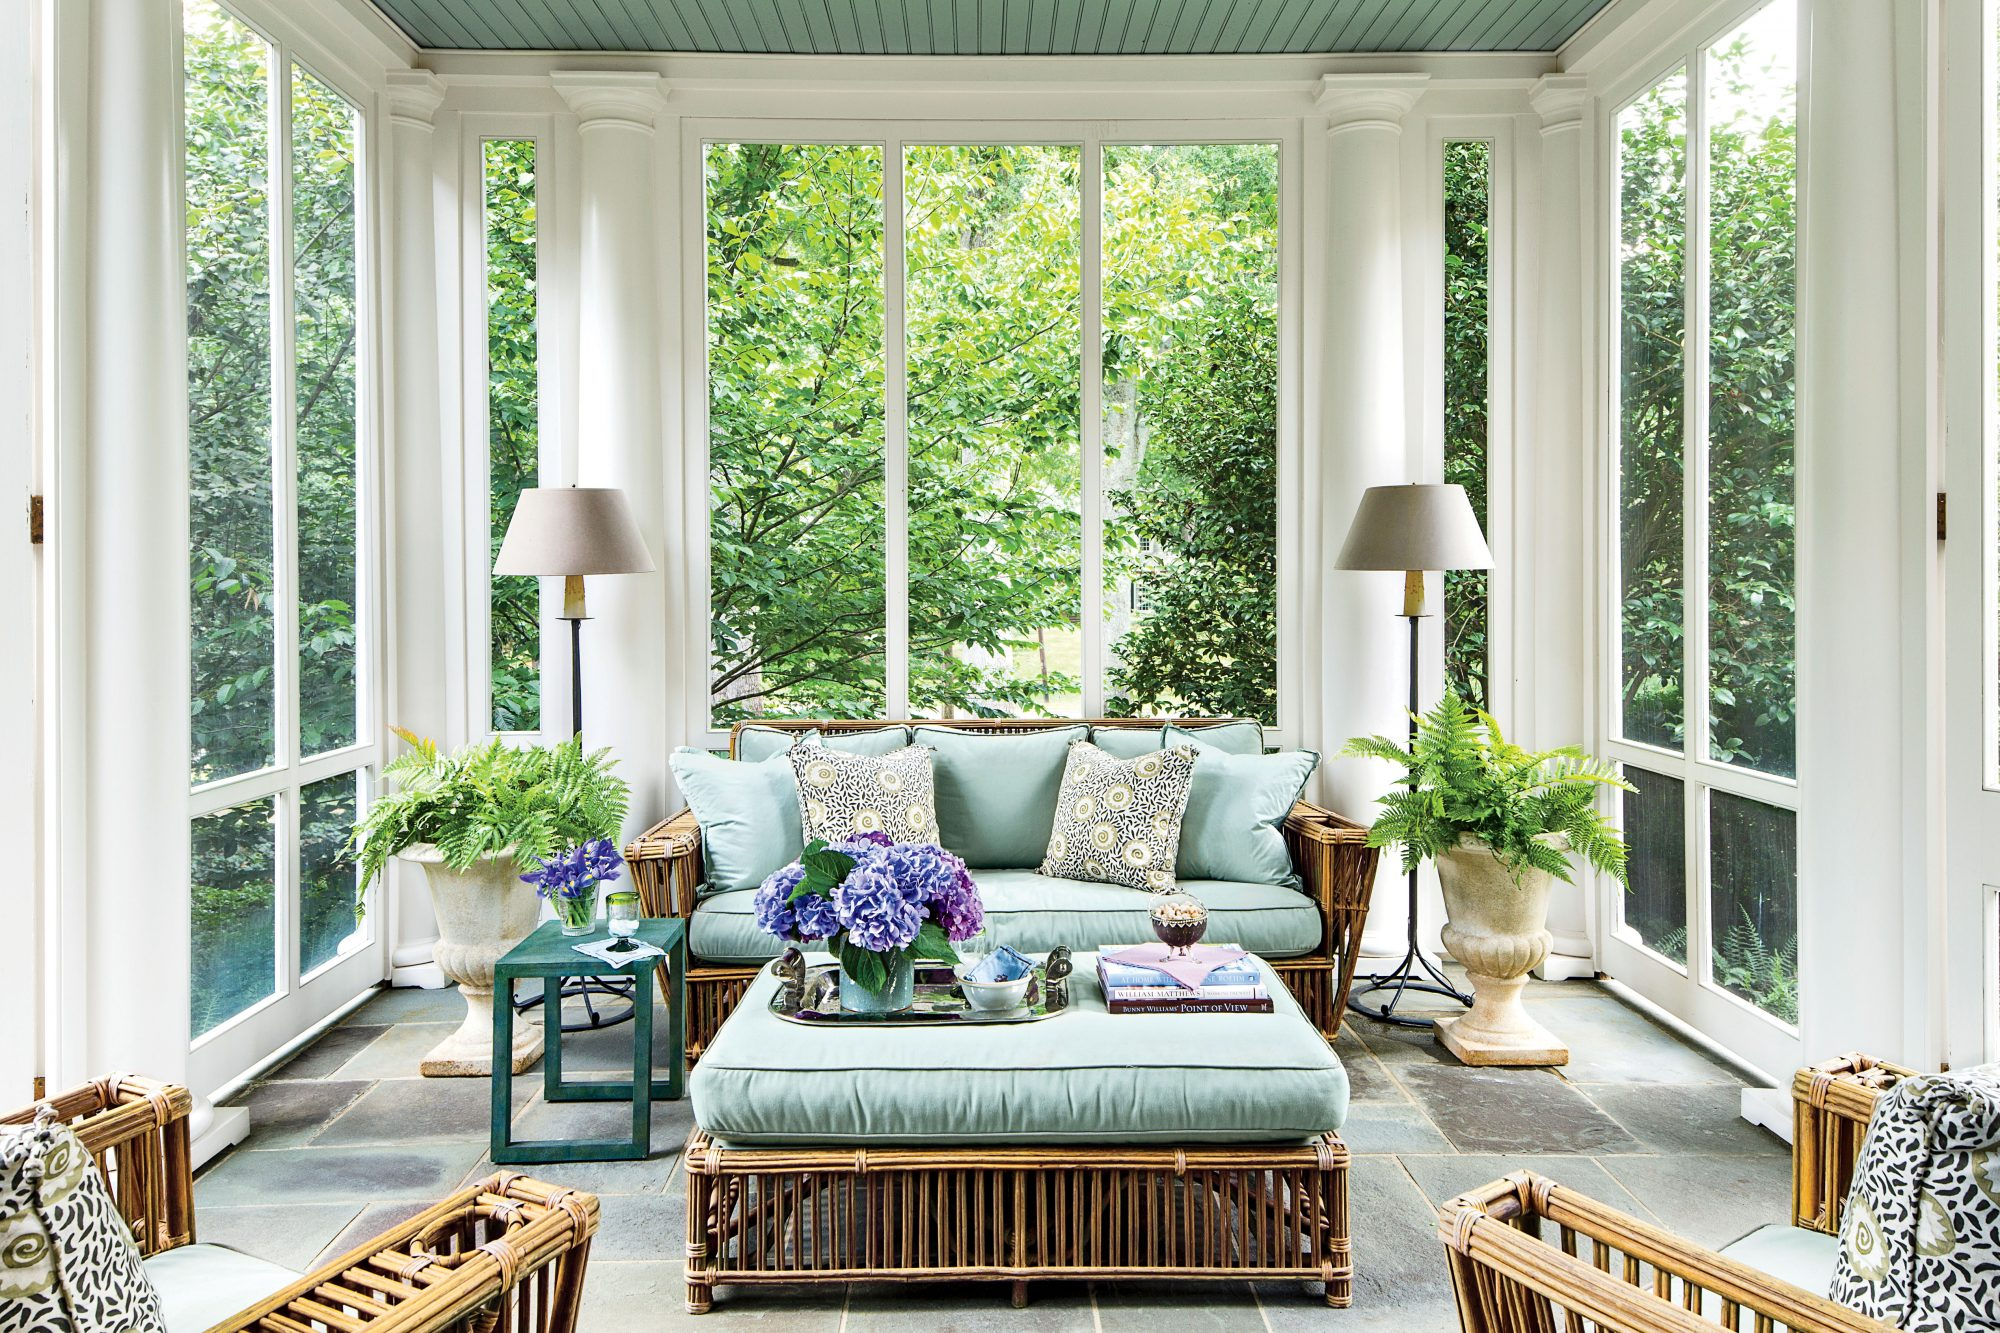 Screened Porch with Tall Windows and Columns